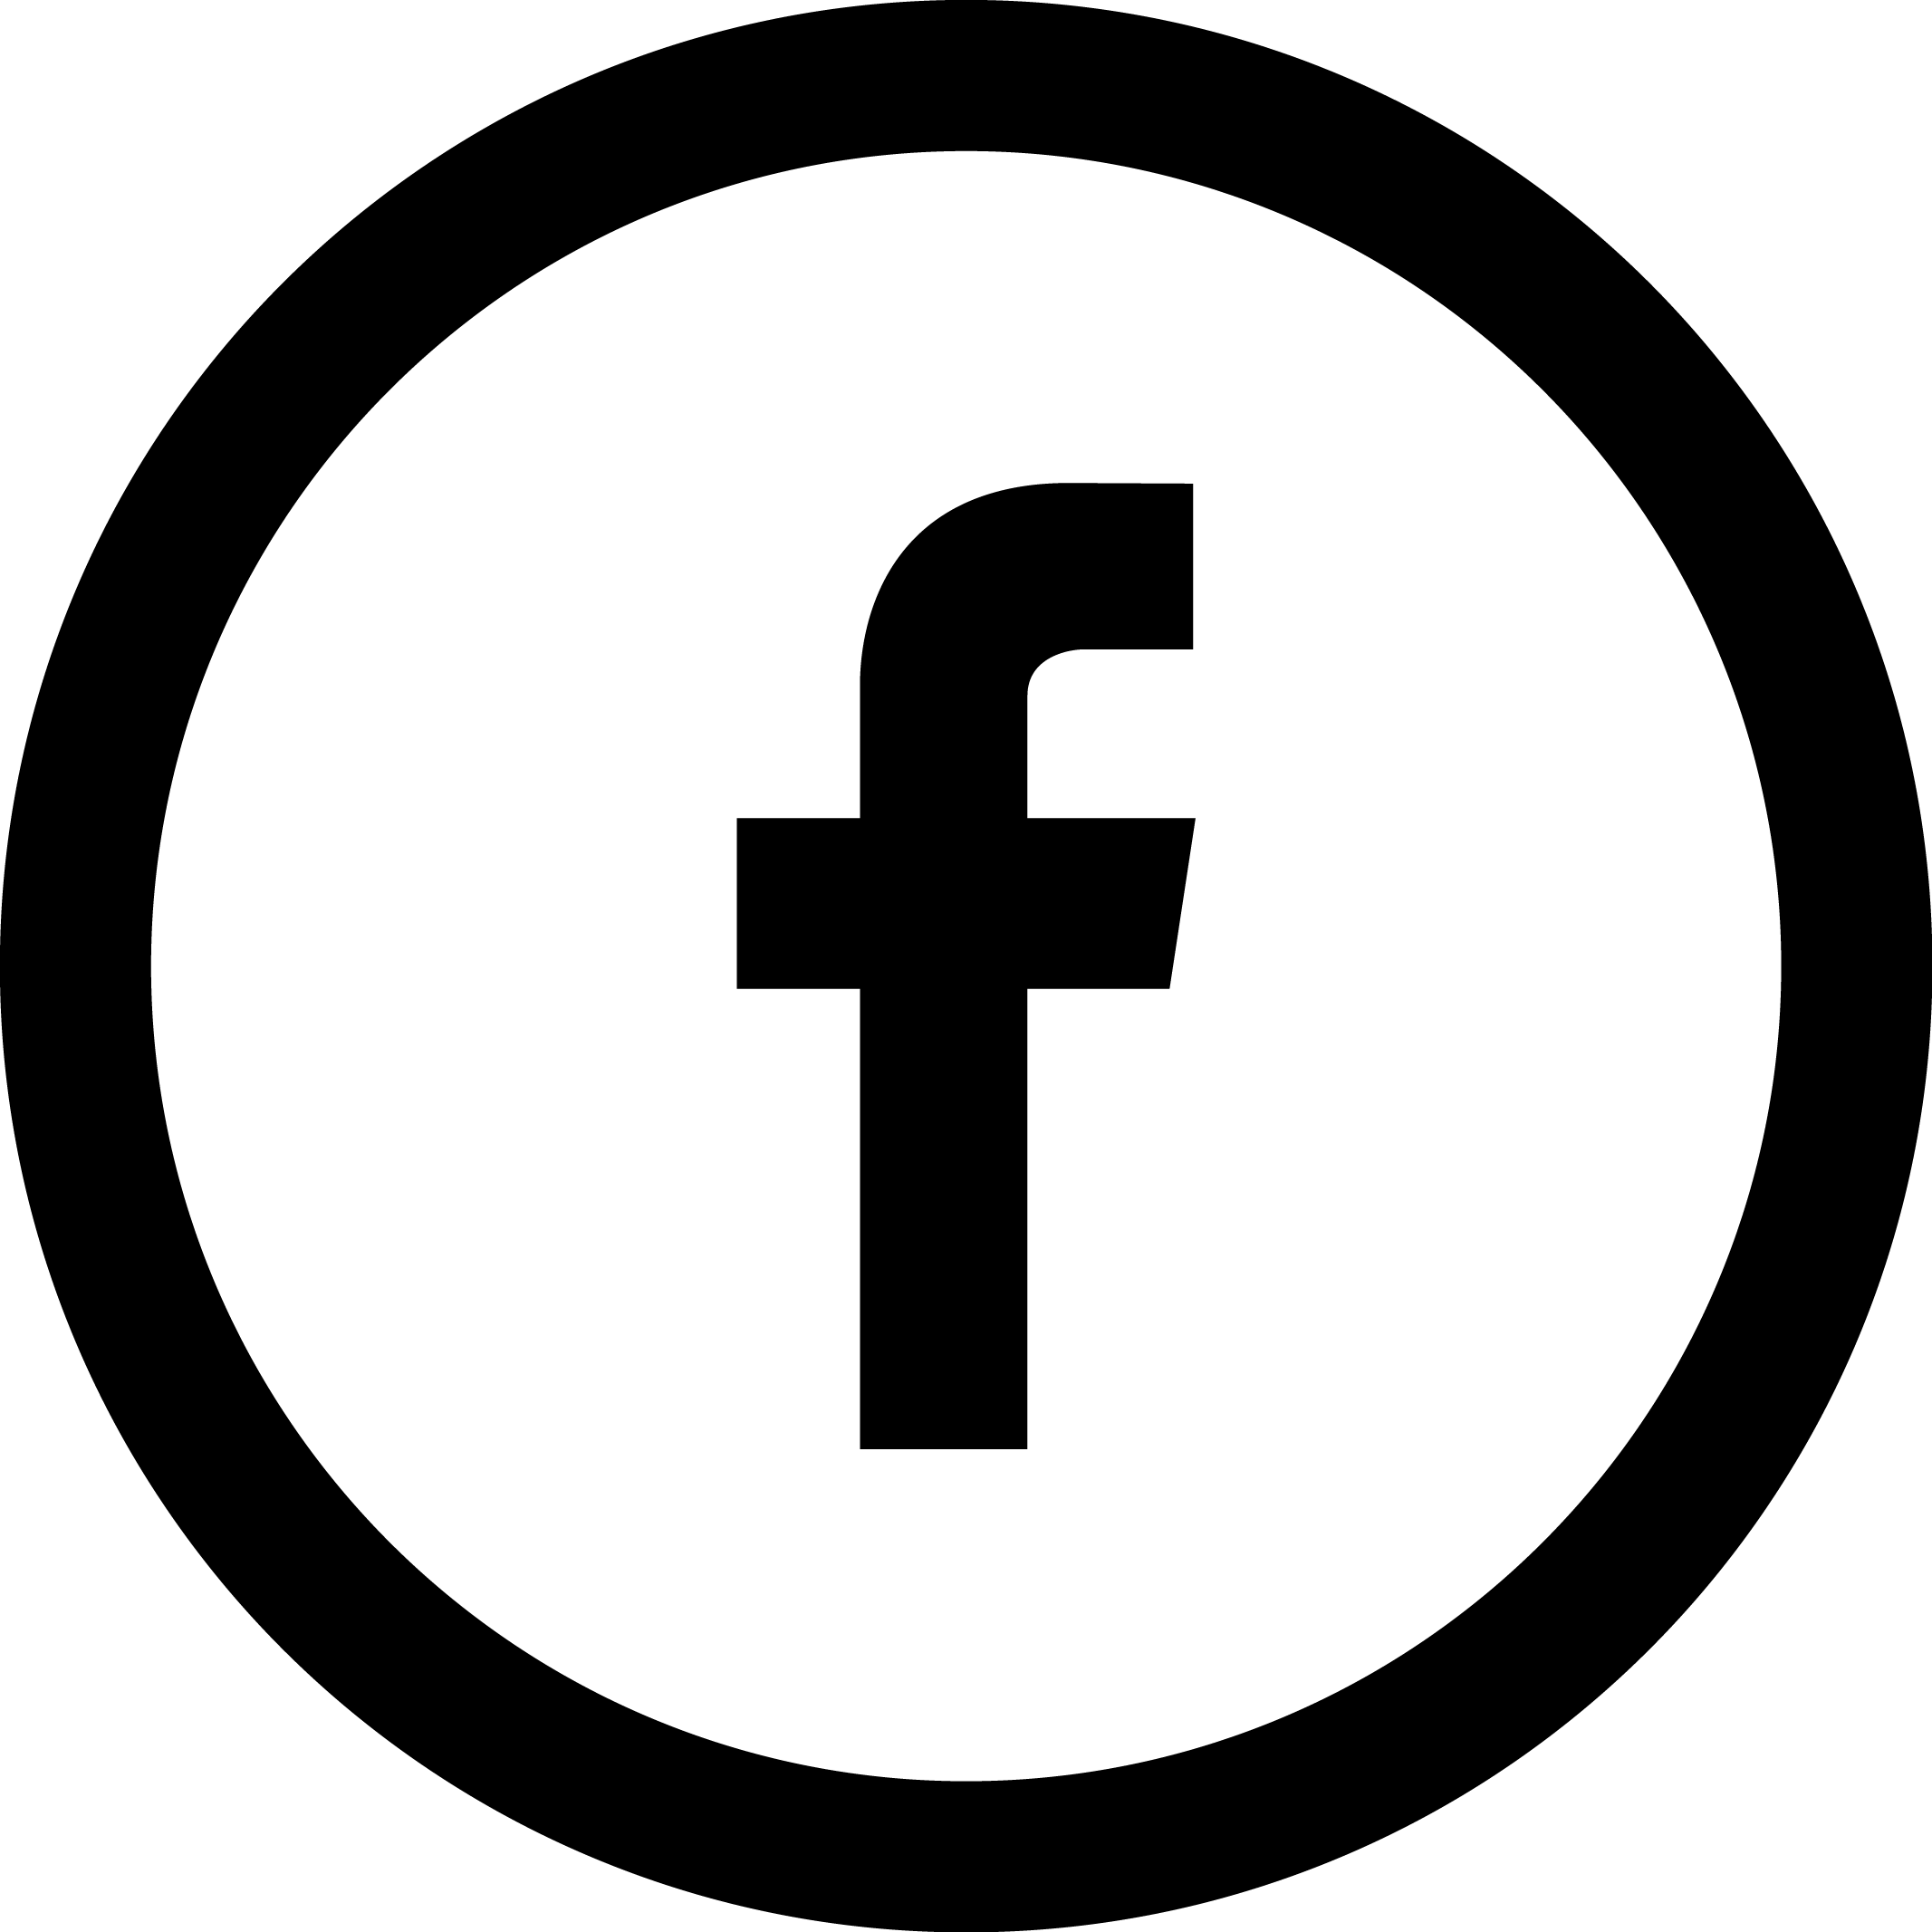 Logotip Facebook